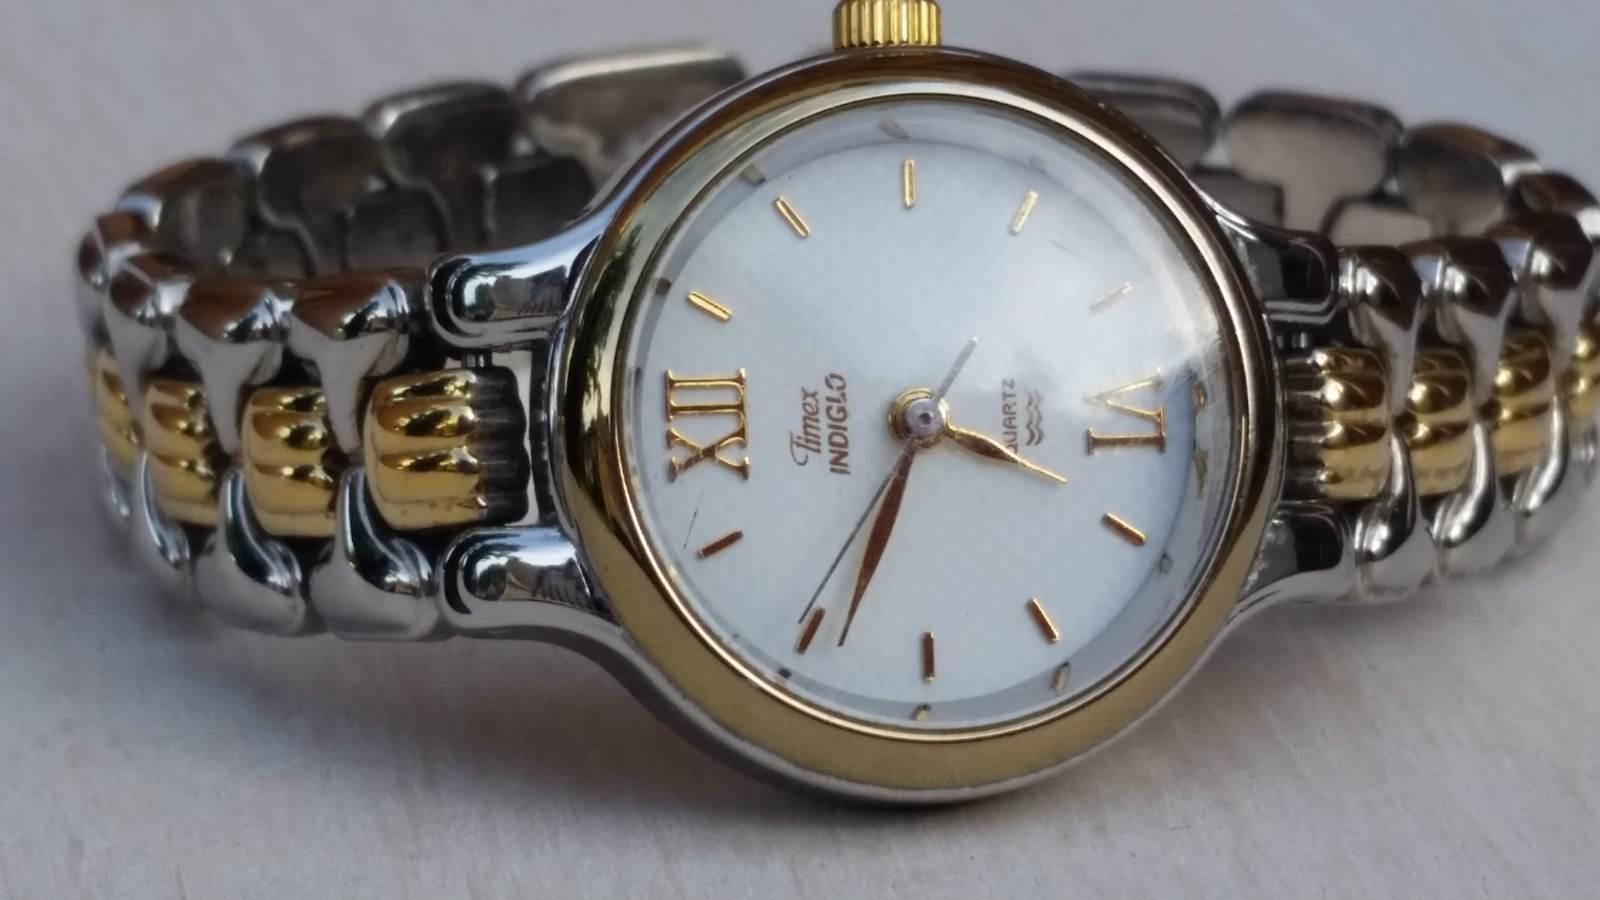 Vintage Rare Timex Indiglo Silver and Gold Tone Womens/Teen Analog Quartz Watch - $125.00